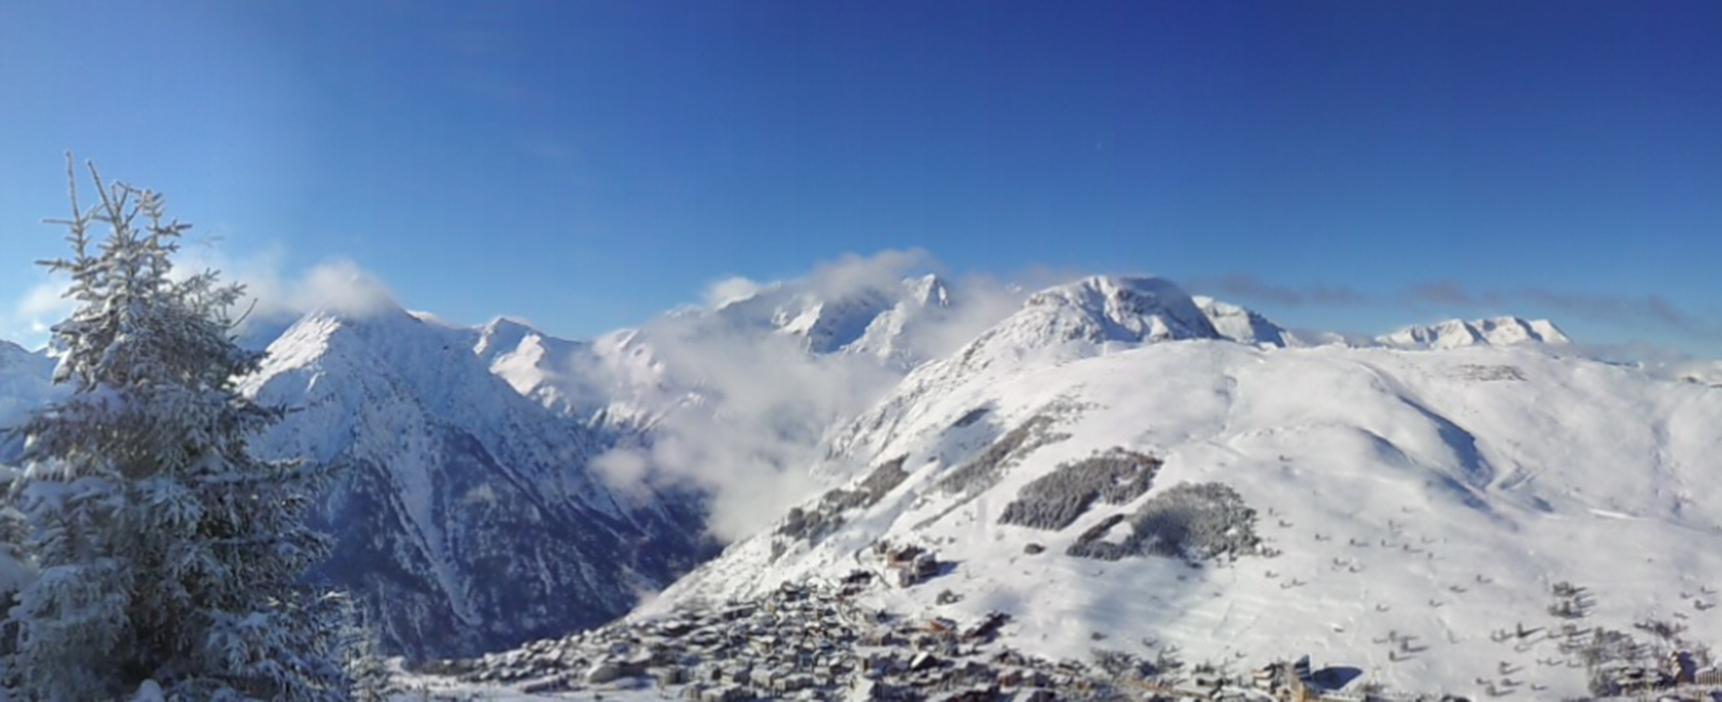 Panoramic view of snowy mountains